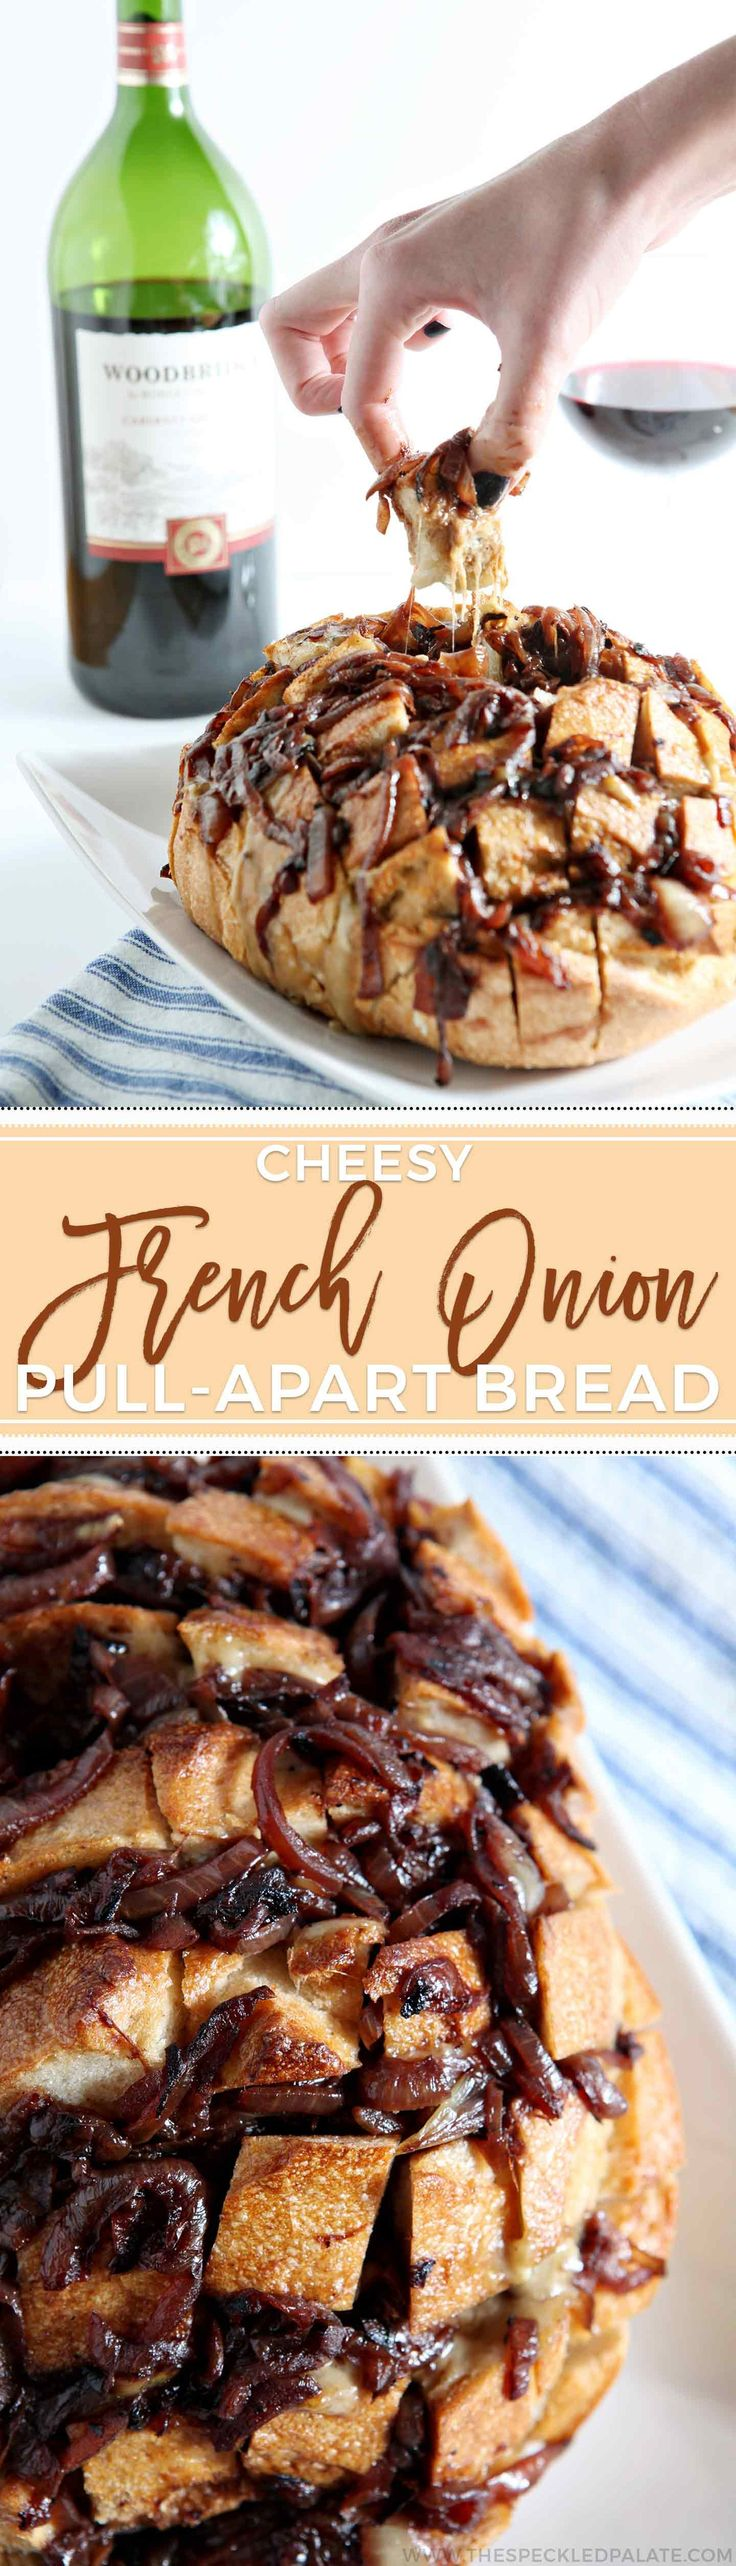 ... Cheesy, gooey, delicious bread that tastes like French Onion Soup! #ad